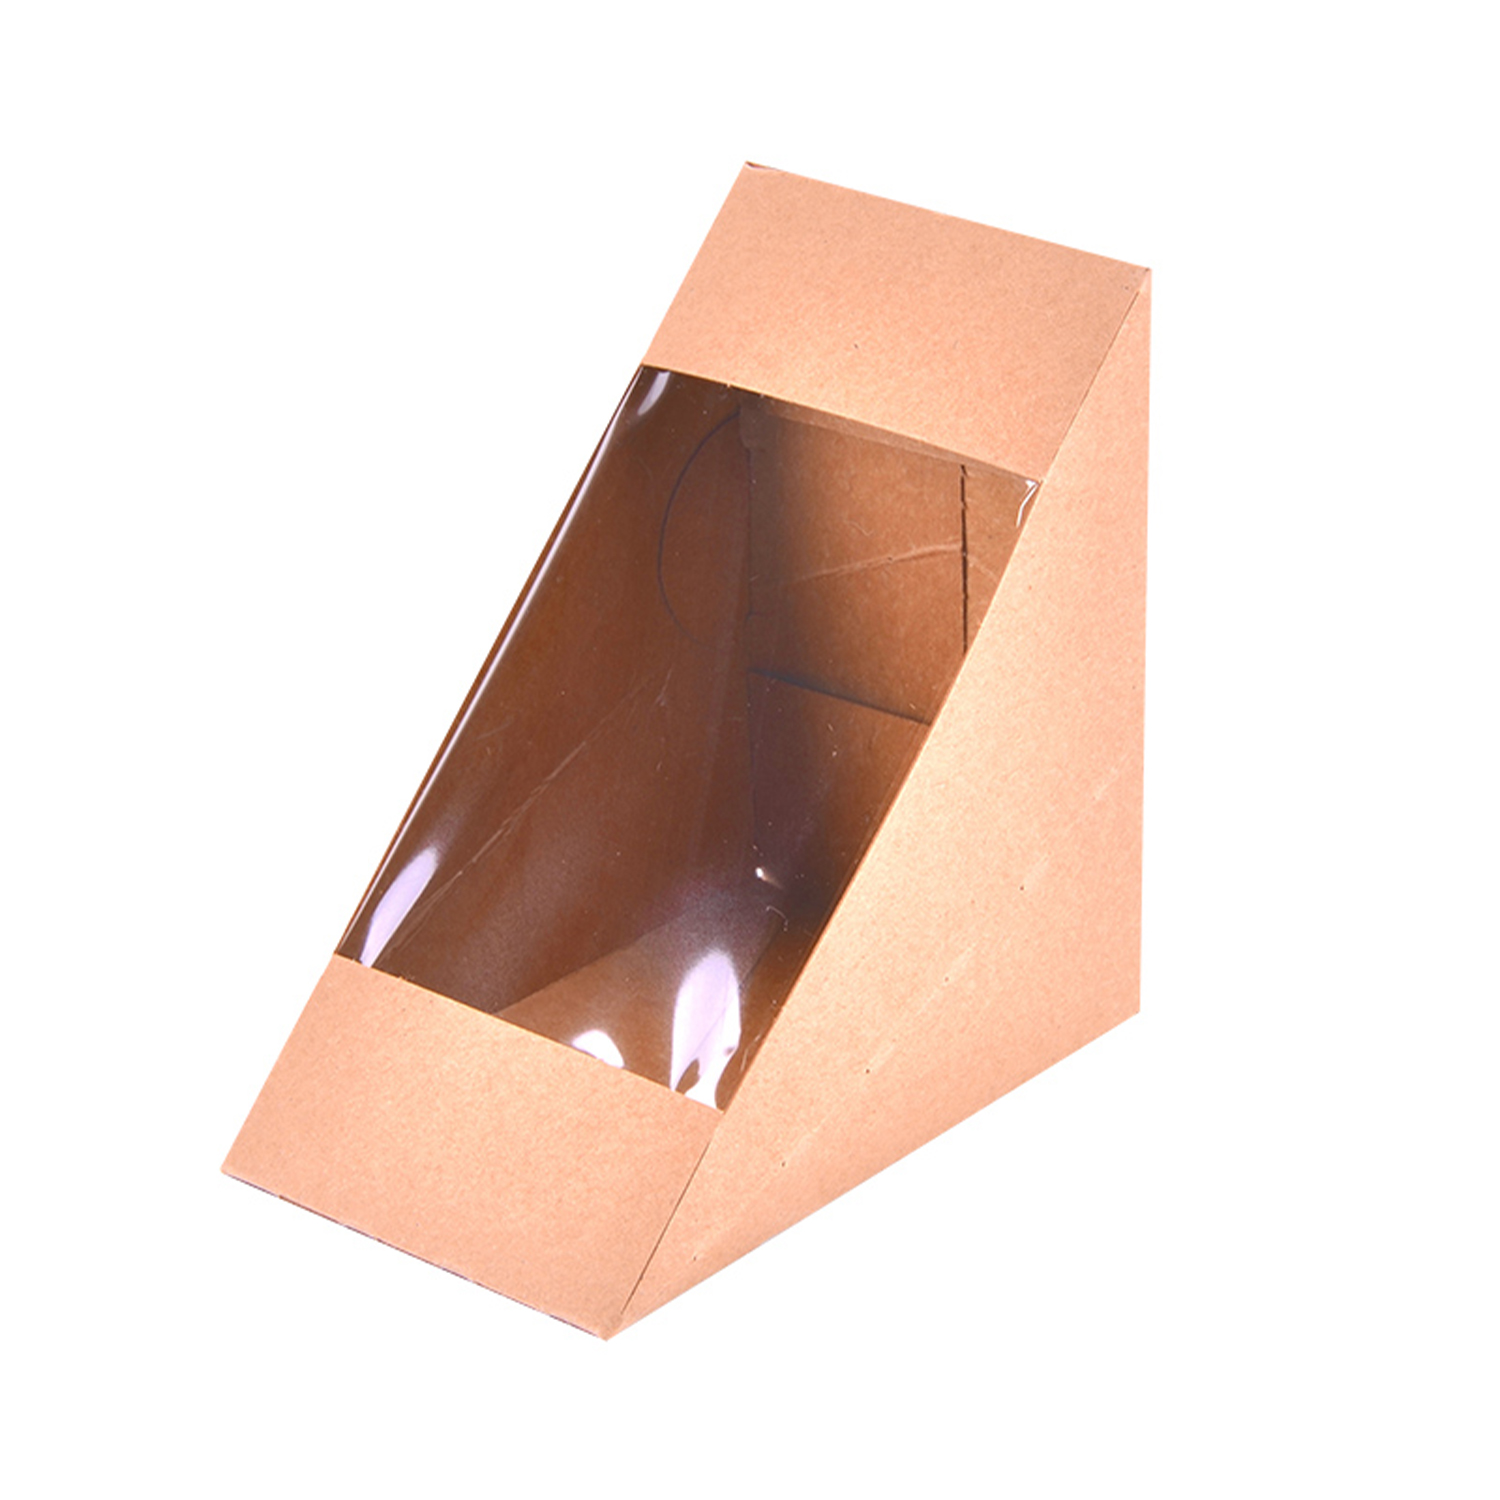 Case of 150 10 lbs Capacity 8-7//8 Length x 5 Width x 6-3//4 Height Southern Champion Tray 27096 Clay Coated Kraft Paperboard Hearthstone Large Barn Style Carry Out Box